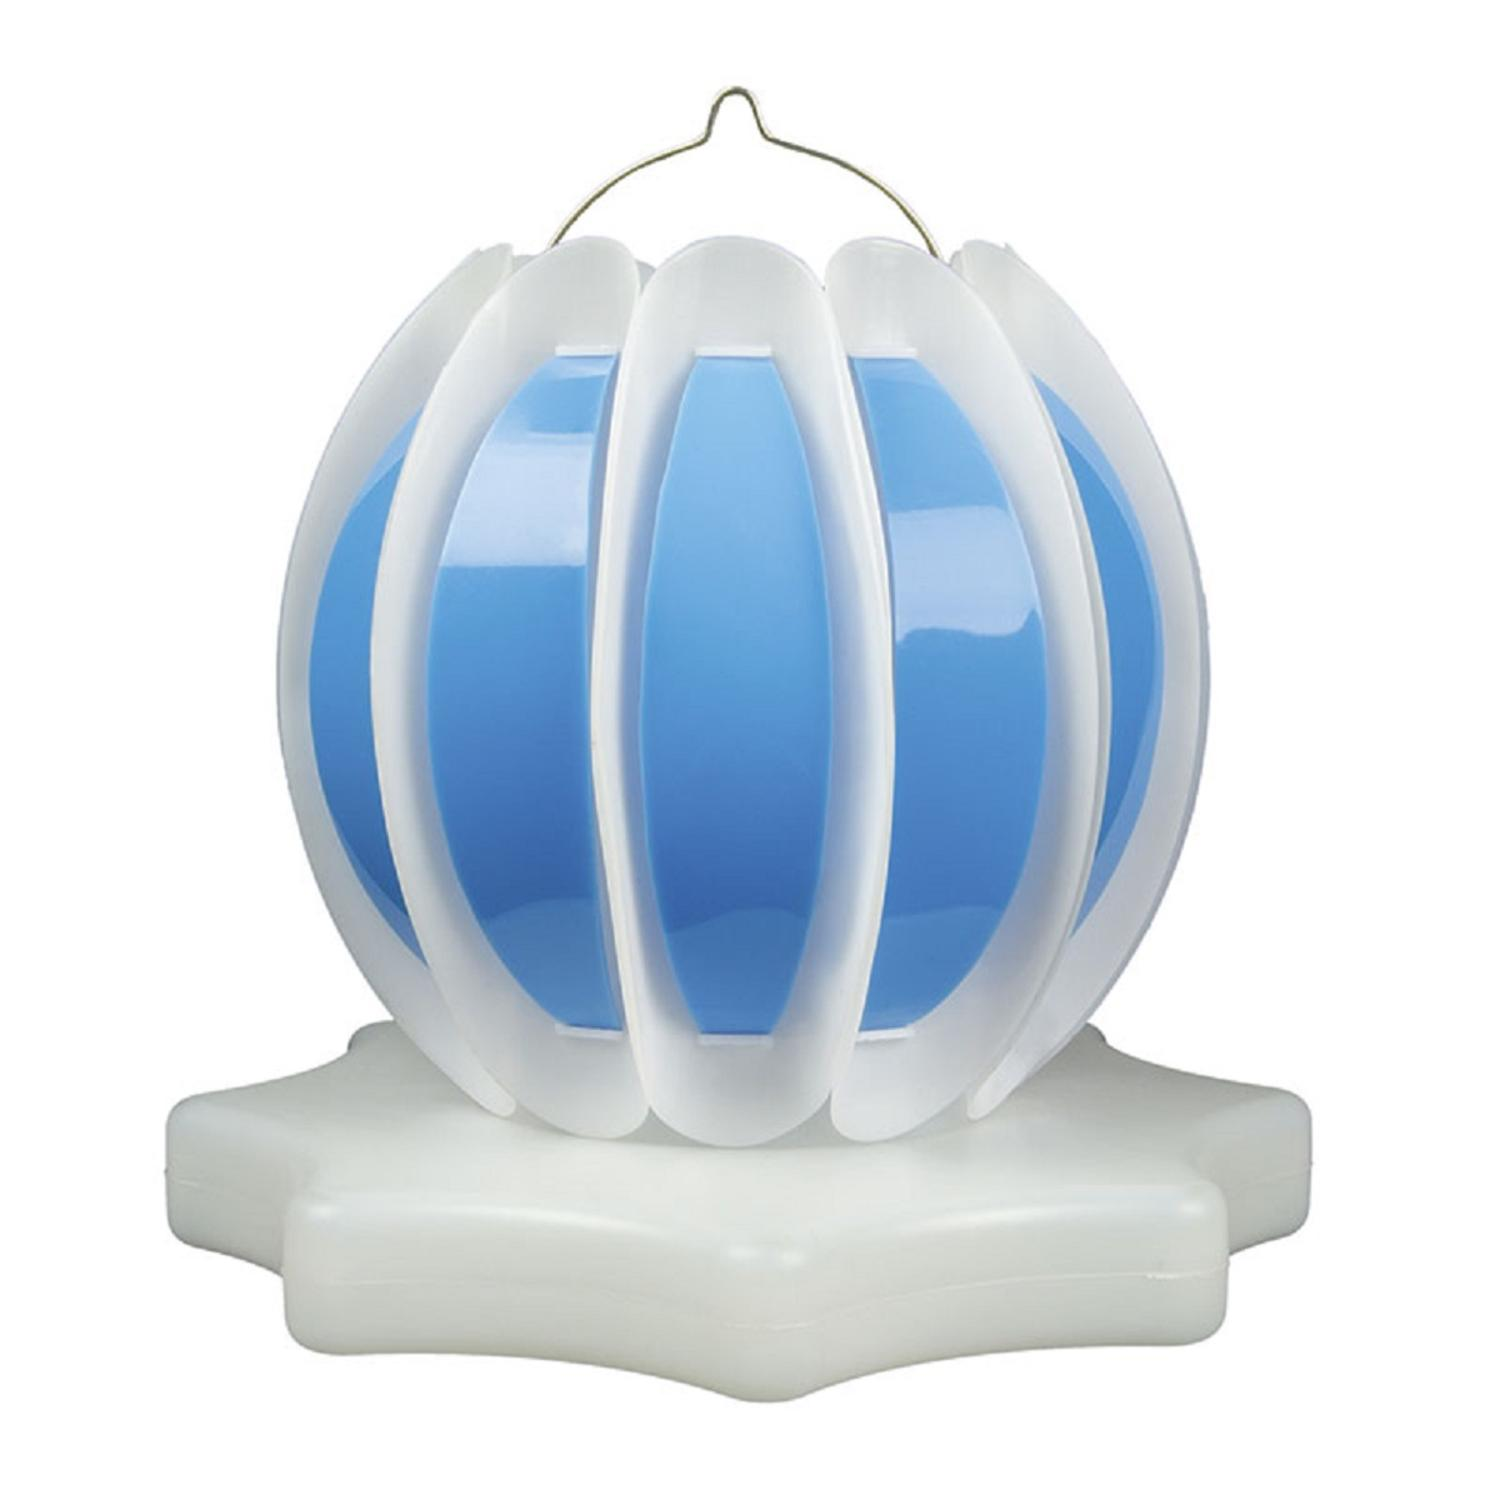 Set of 2 Blue and White Floating or Hanging Solar Powered Outdoor Decorative Lanterns